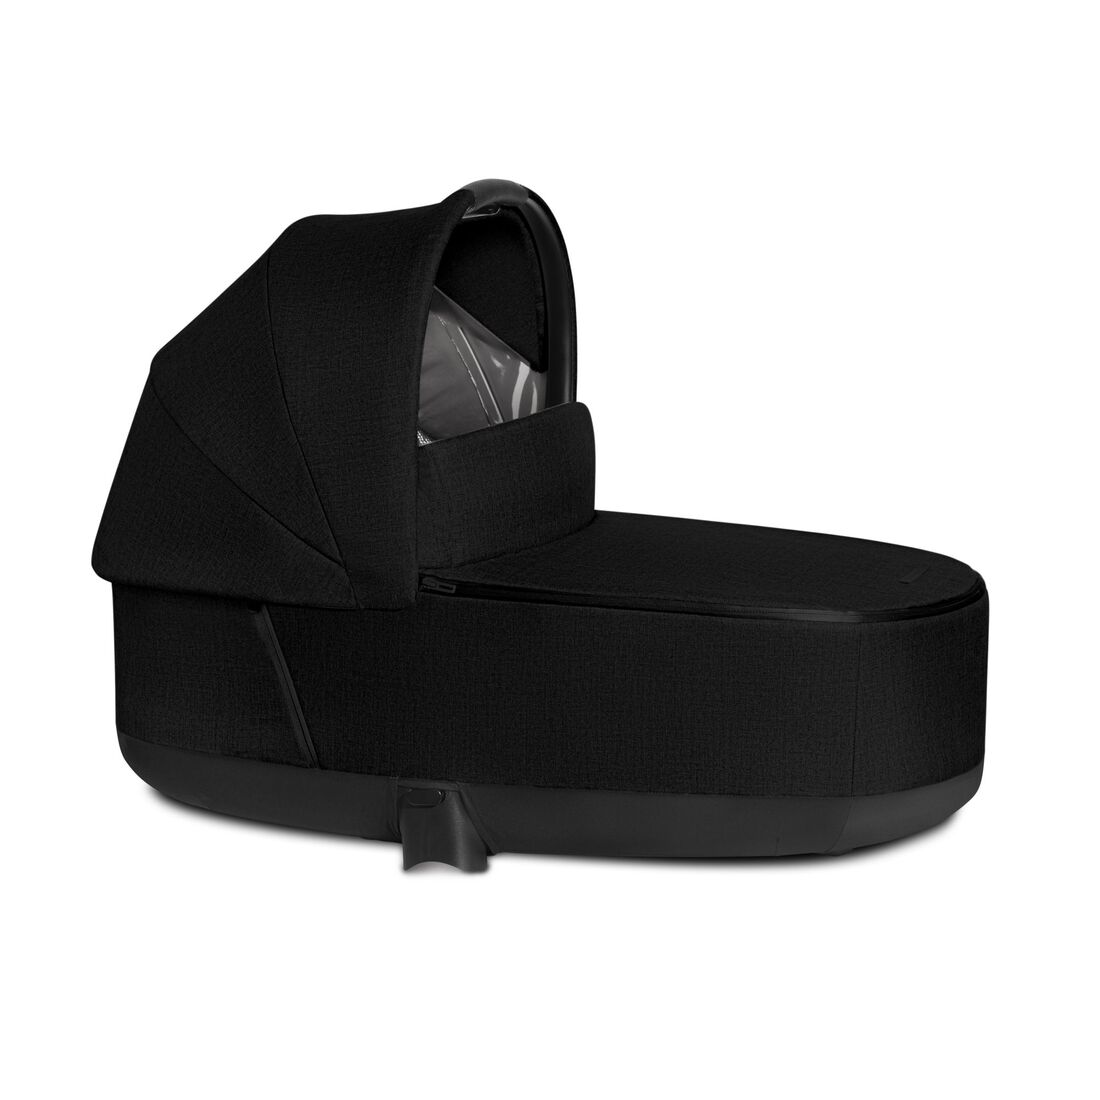 CYBEX Priam Lux Carry Cot - Stardust Black Plus in Stardust Black Plus large image number 1